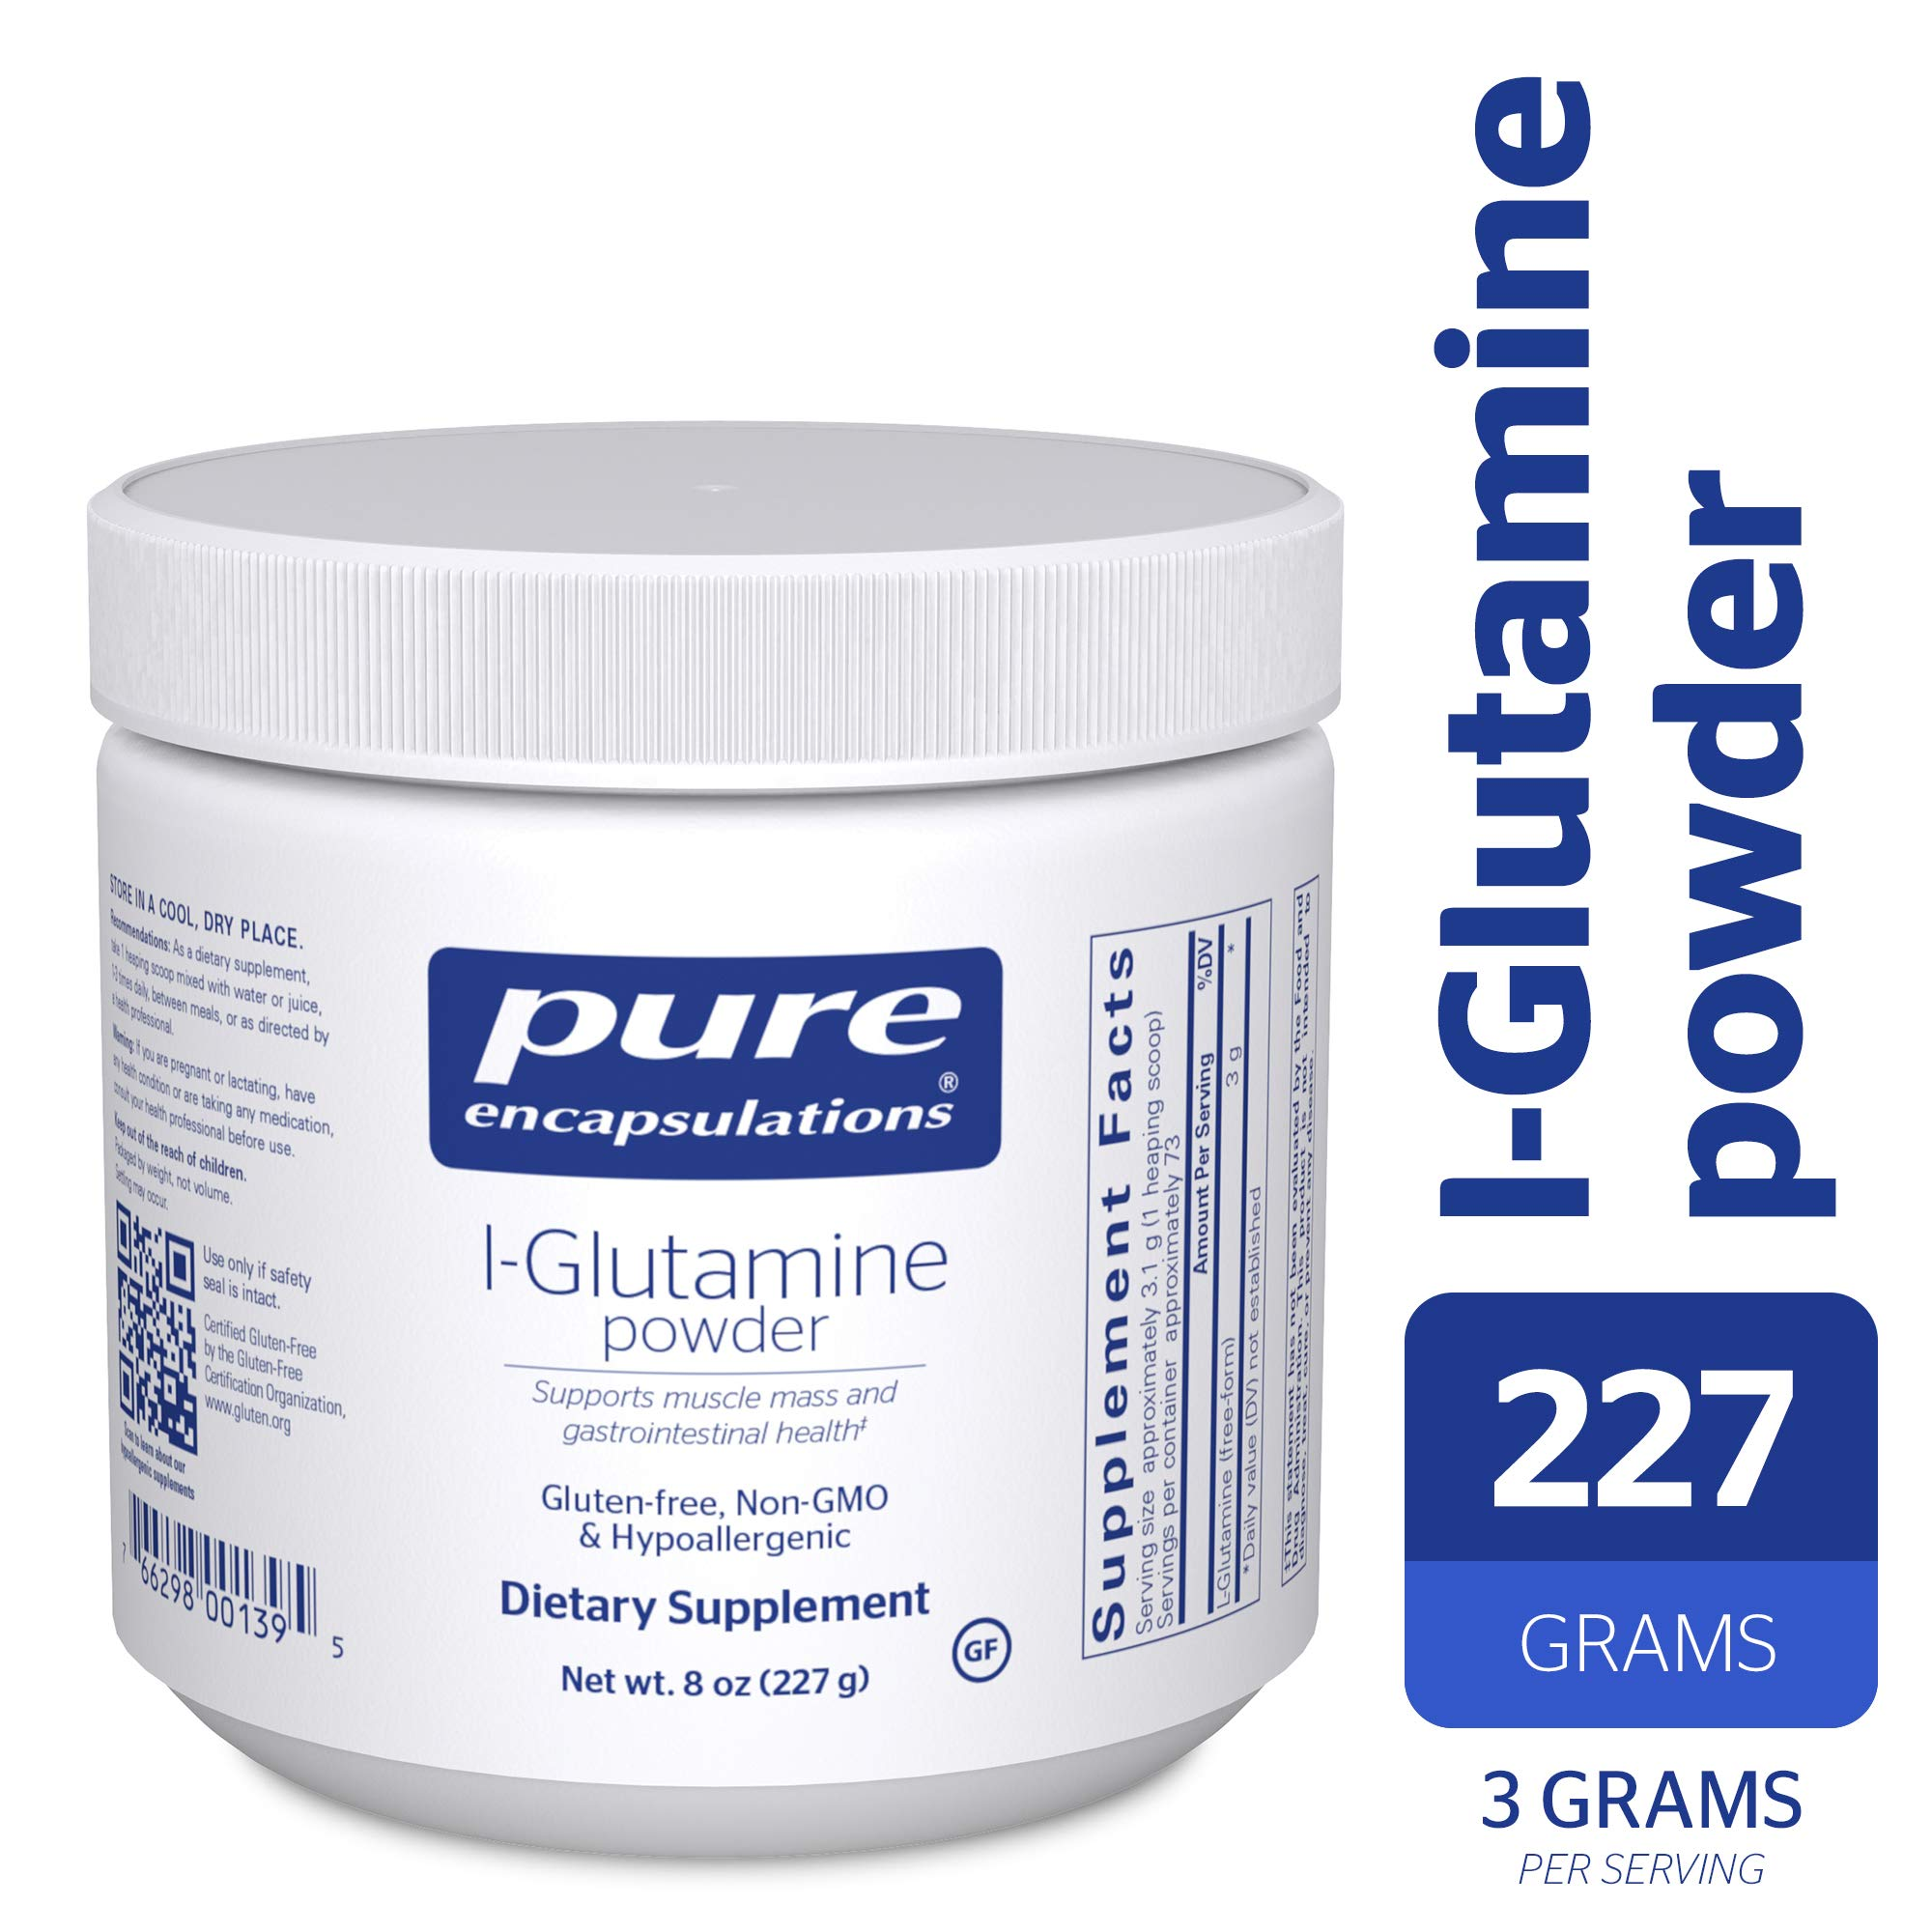 Pure Encapsulations - l-Glutamine Powder - Hypoallergenic Supplement Supports Muscle Mass and Gastrointestinal Tract* - 227 Grams by Pure Encapsulations